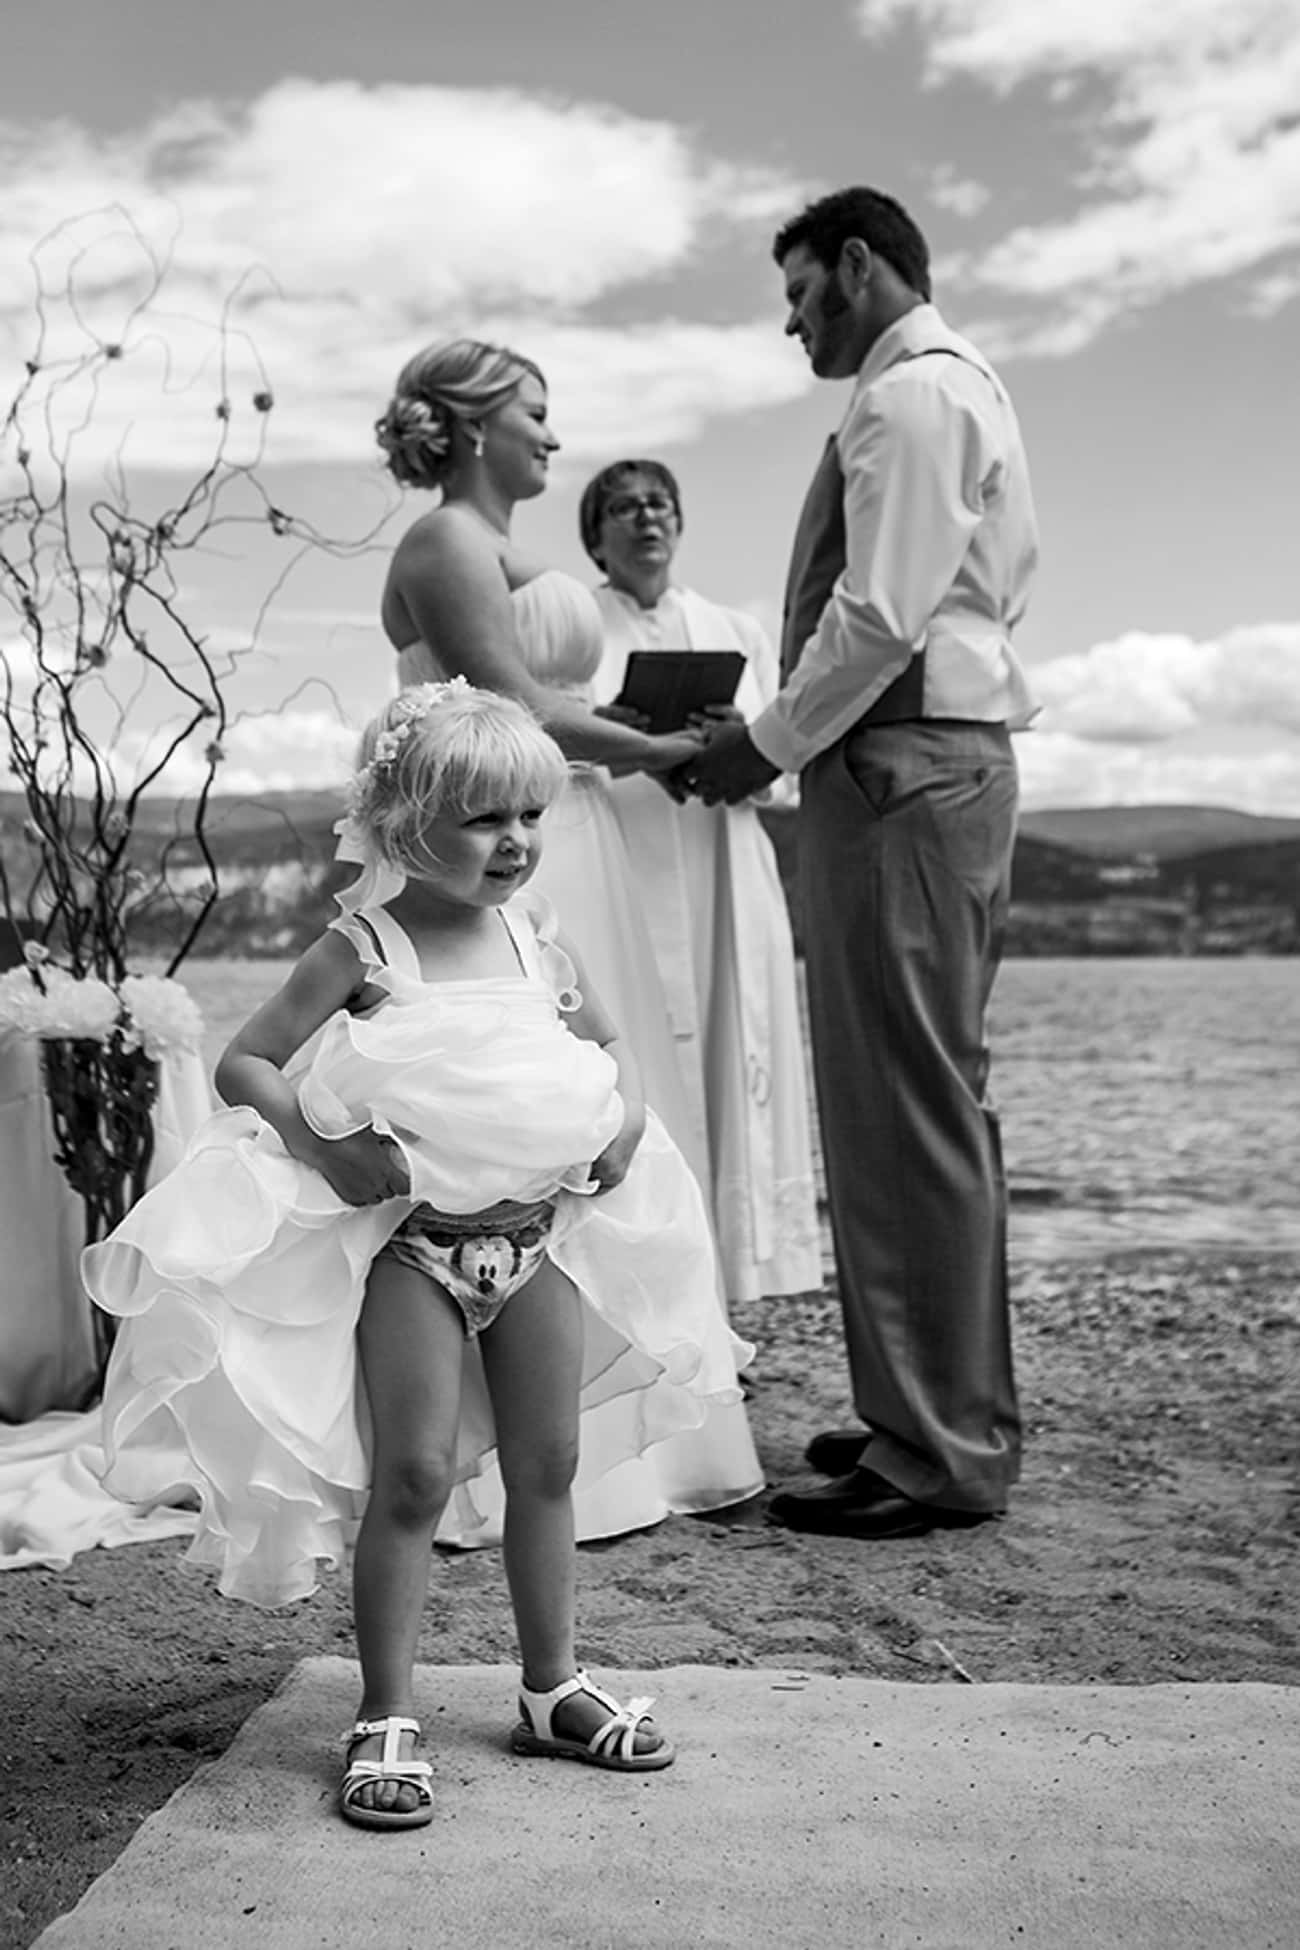 """One Sec, Lemme Just Adjus is listed (or ranked) 2 on the list The Funniest Flower Girl Fails of All Time"